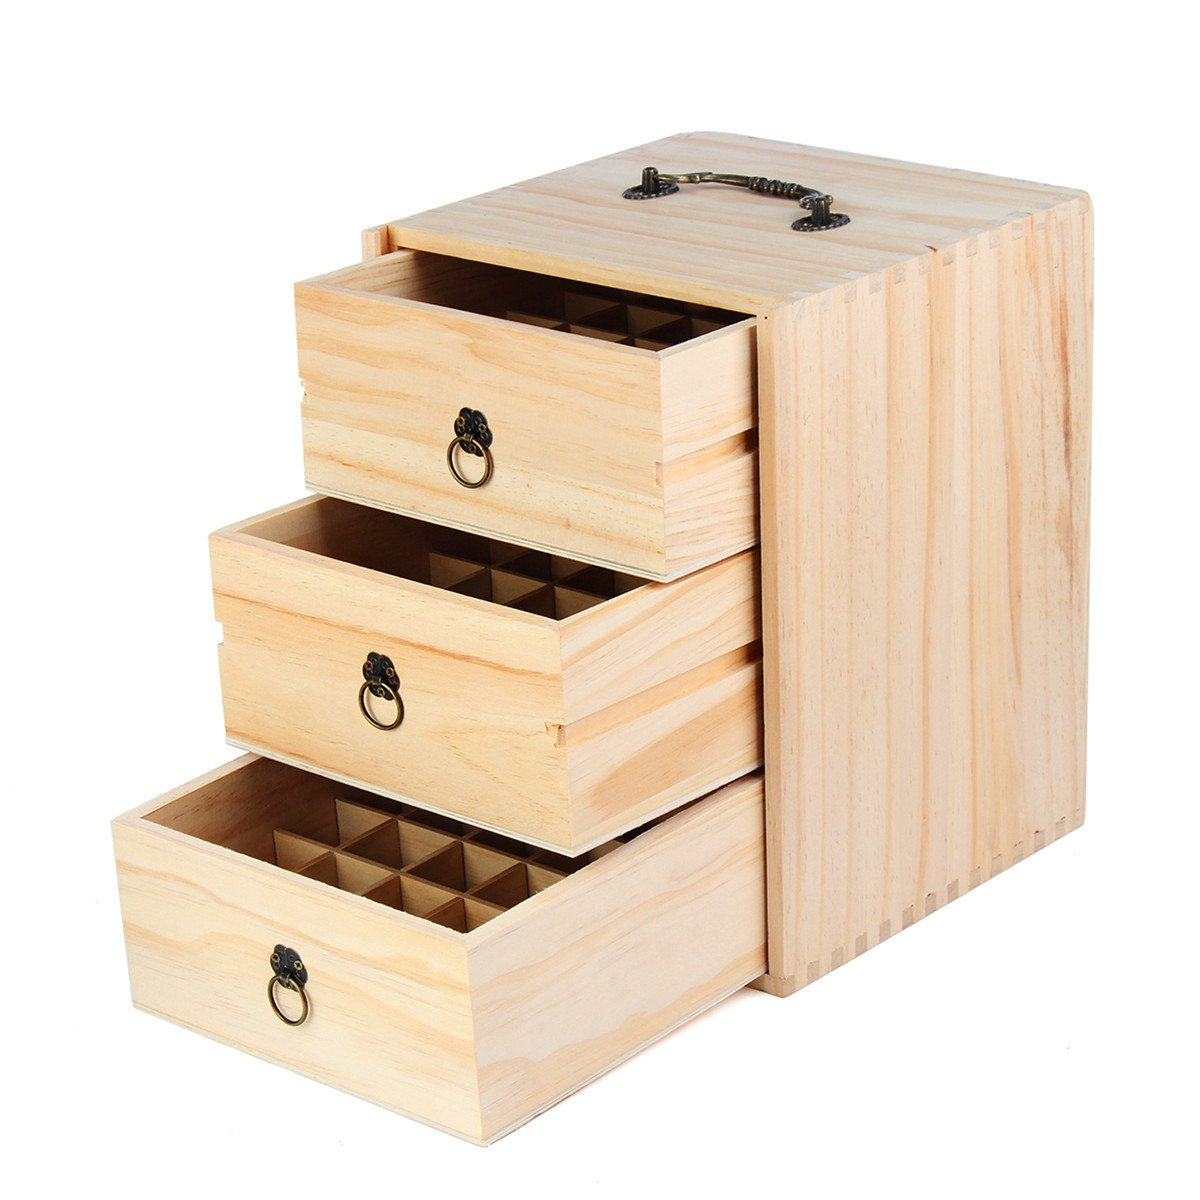 KINGSO Wooden Essential Oil Box Case Wooden Oil Storage Container Pine Box Holds 22 Slots total Large Organizer Best For Travel Display Cosmetics and Presentations (75 Slots)